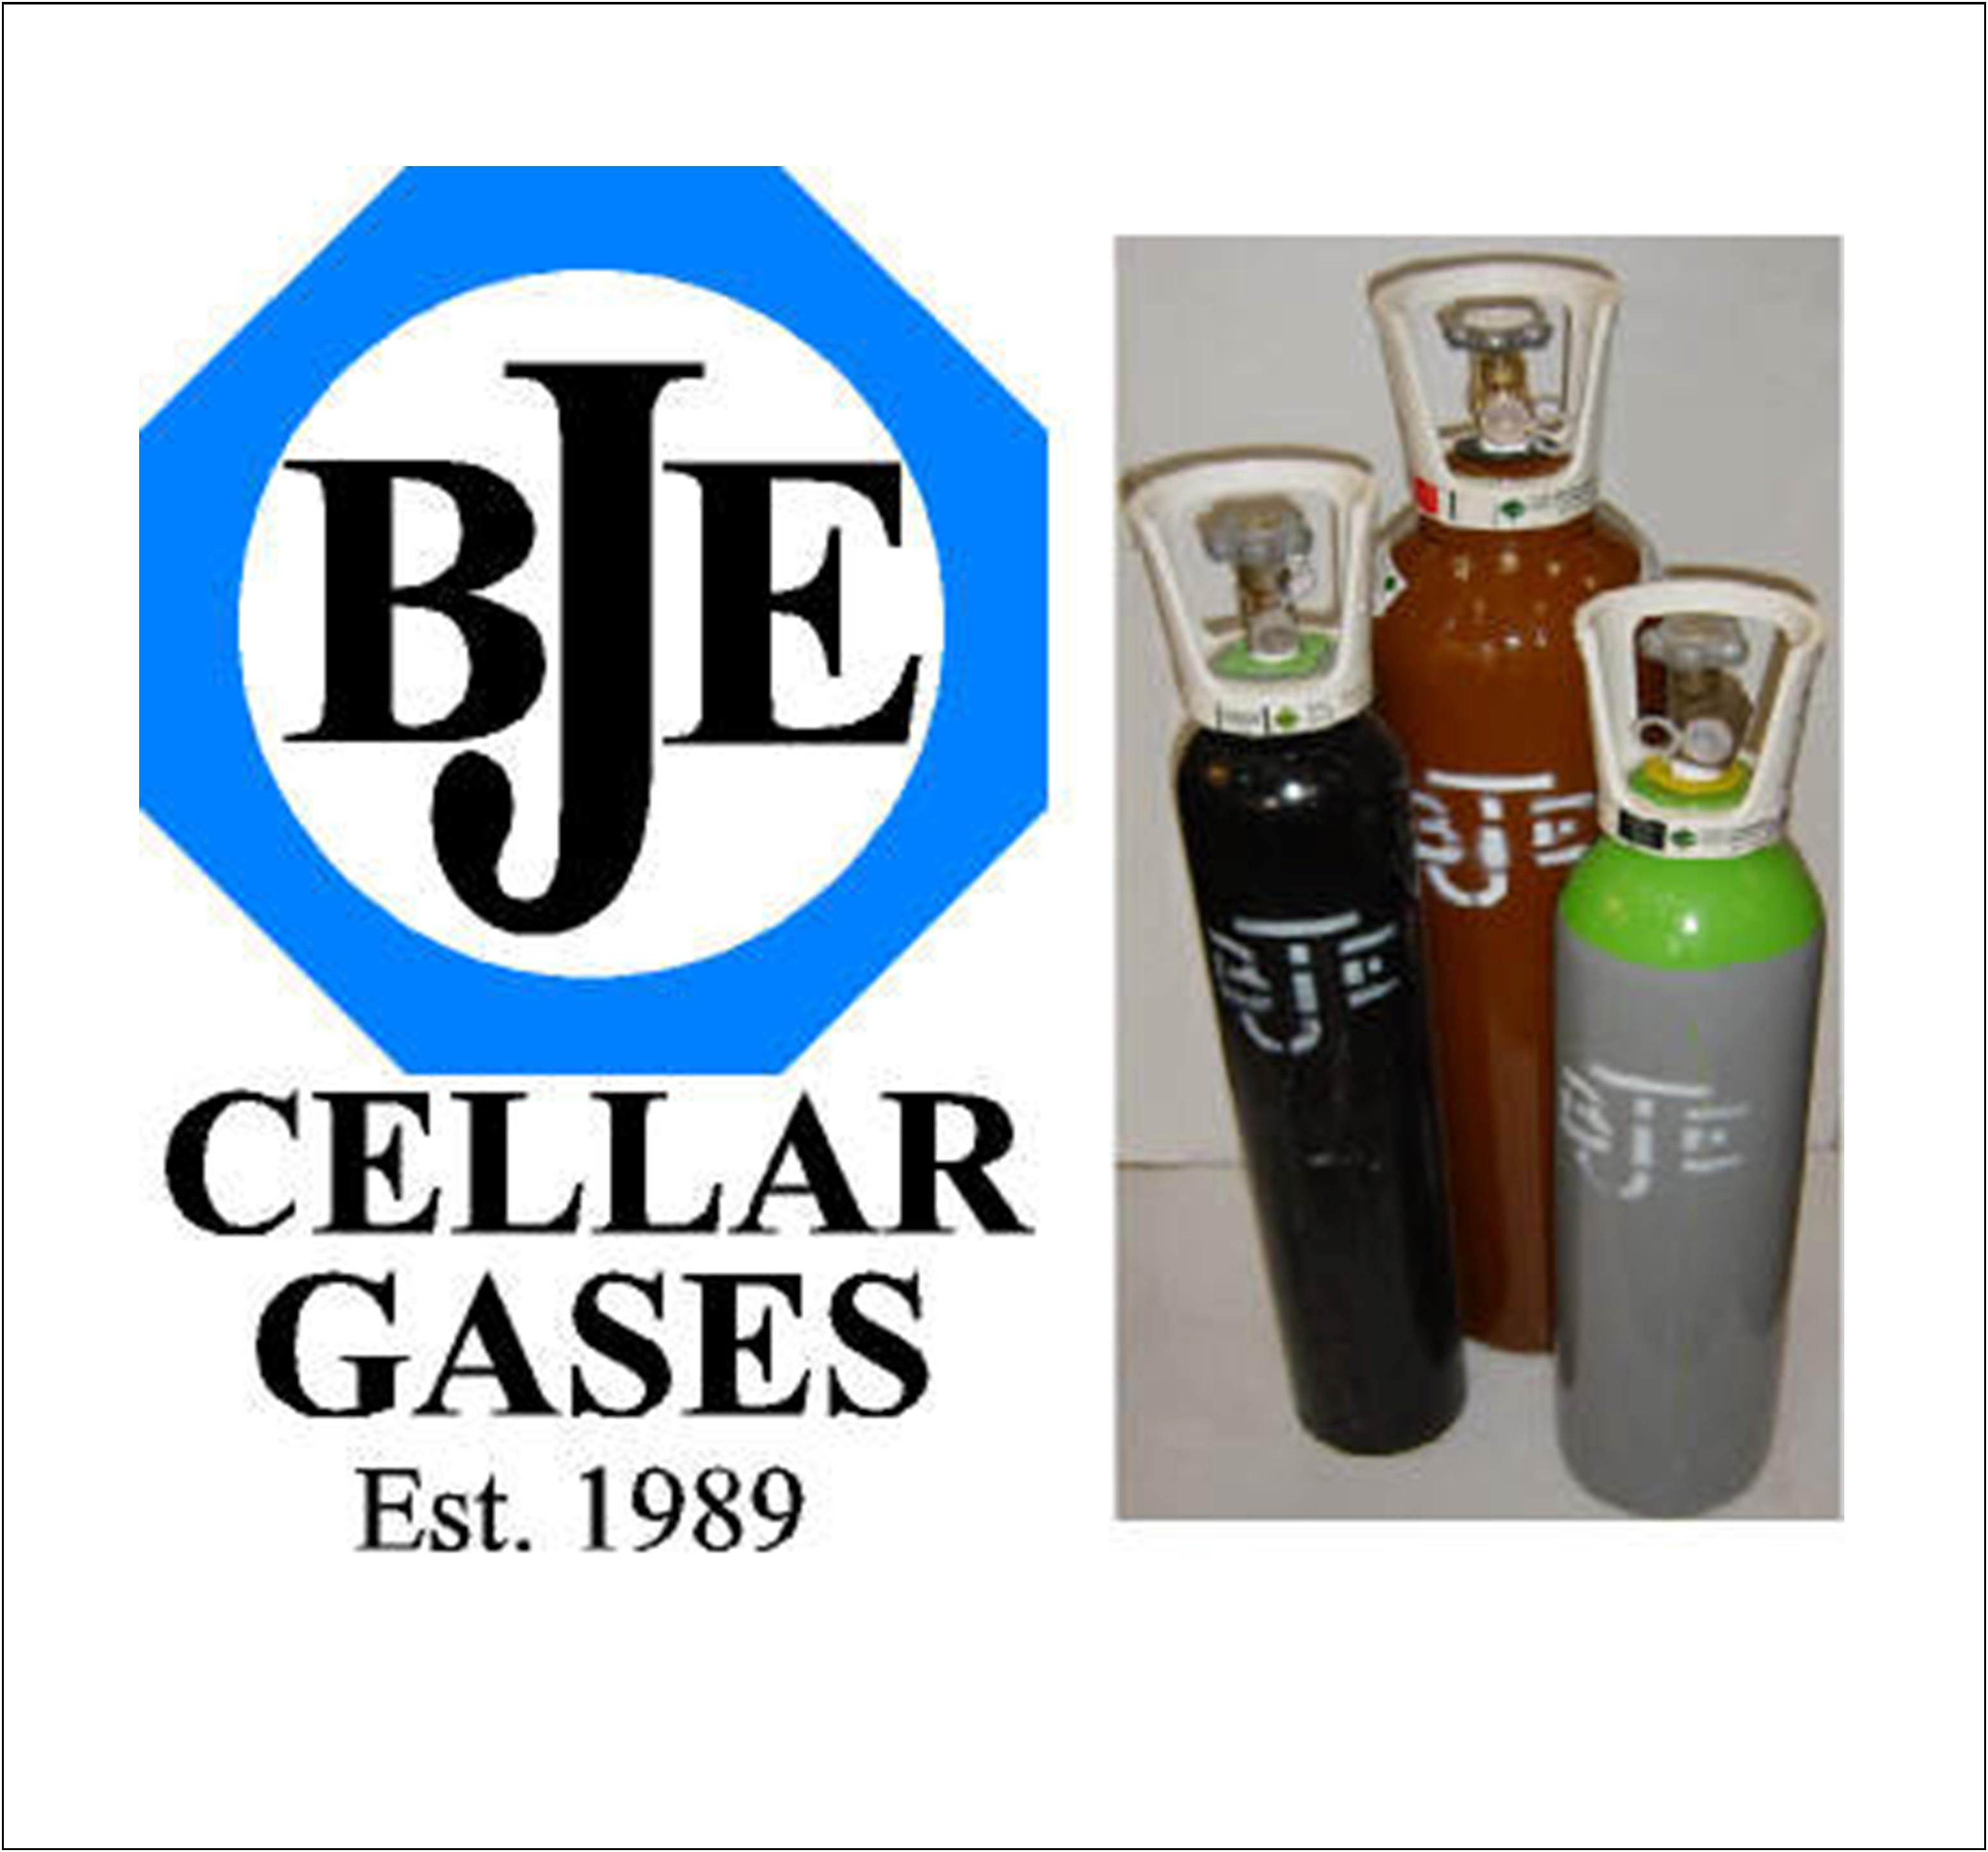 BJE (CARBON DIOXIDE)CO2 GAS u003d SUPPLIERS OF HELIUM BALLOON GAS CELLAR BEER GAS PROPANE BUTANE CALOR GAS OXYGEN GAS BEERLINE CLEANER TO THE WEST MIDLANDS  sc 1 th 217 & BJE (CARBON DIOXIDE)CO2 GAS u003d SUPPLIERS OF HELIUM BALLOON GAS ...